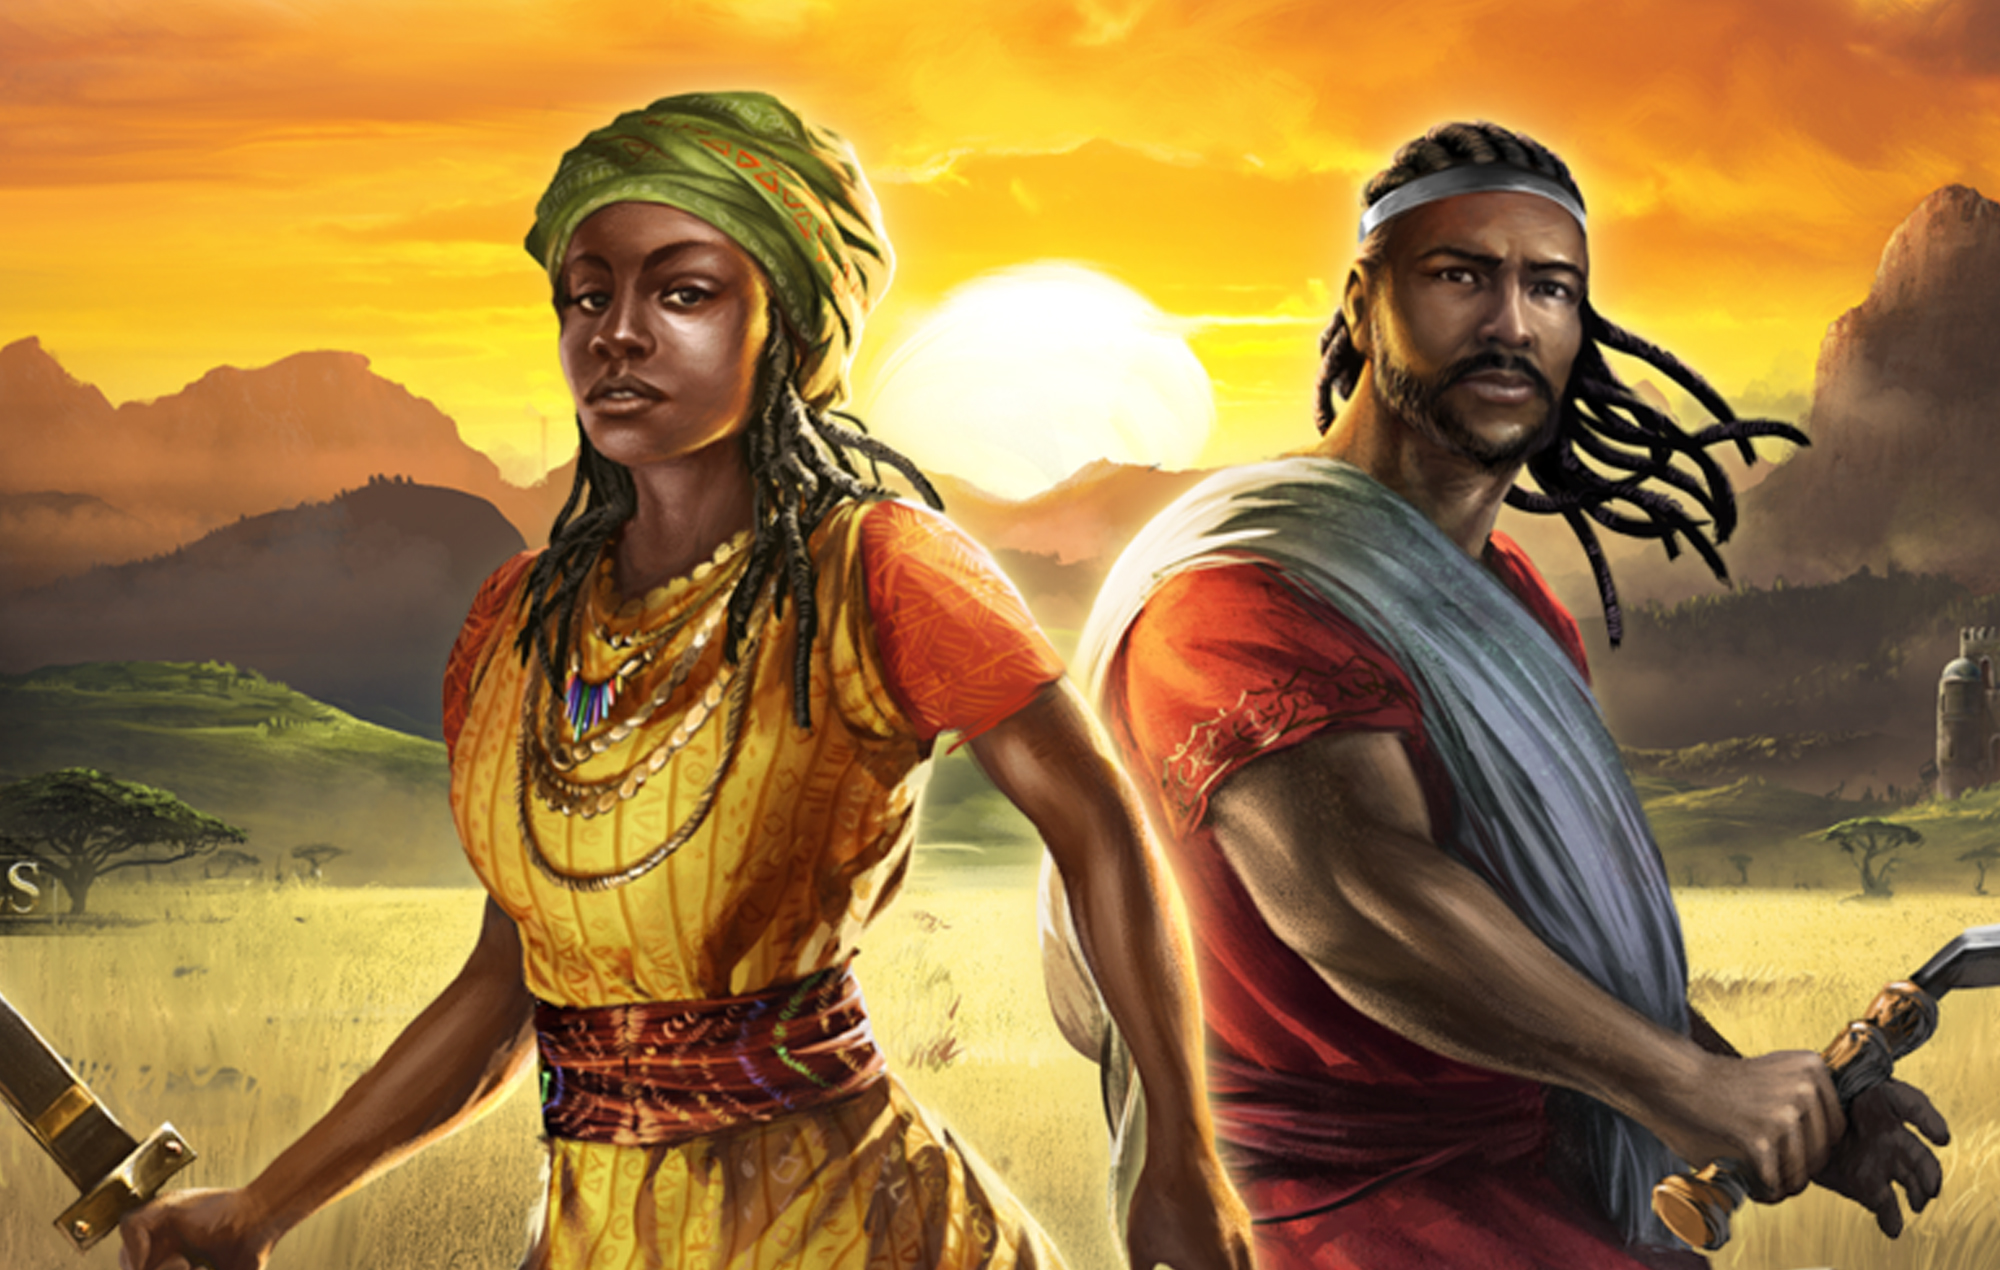 Age of Empires III: The African Royals